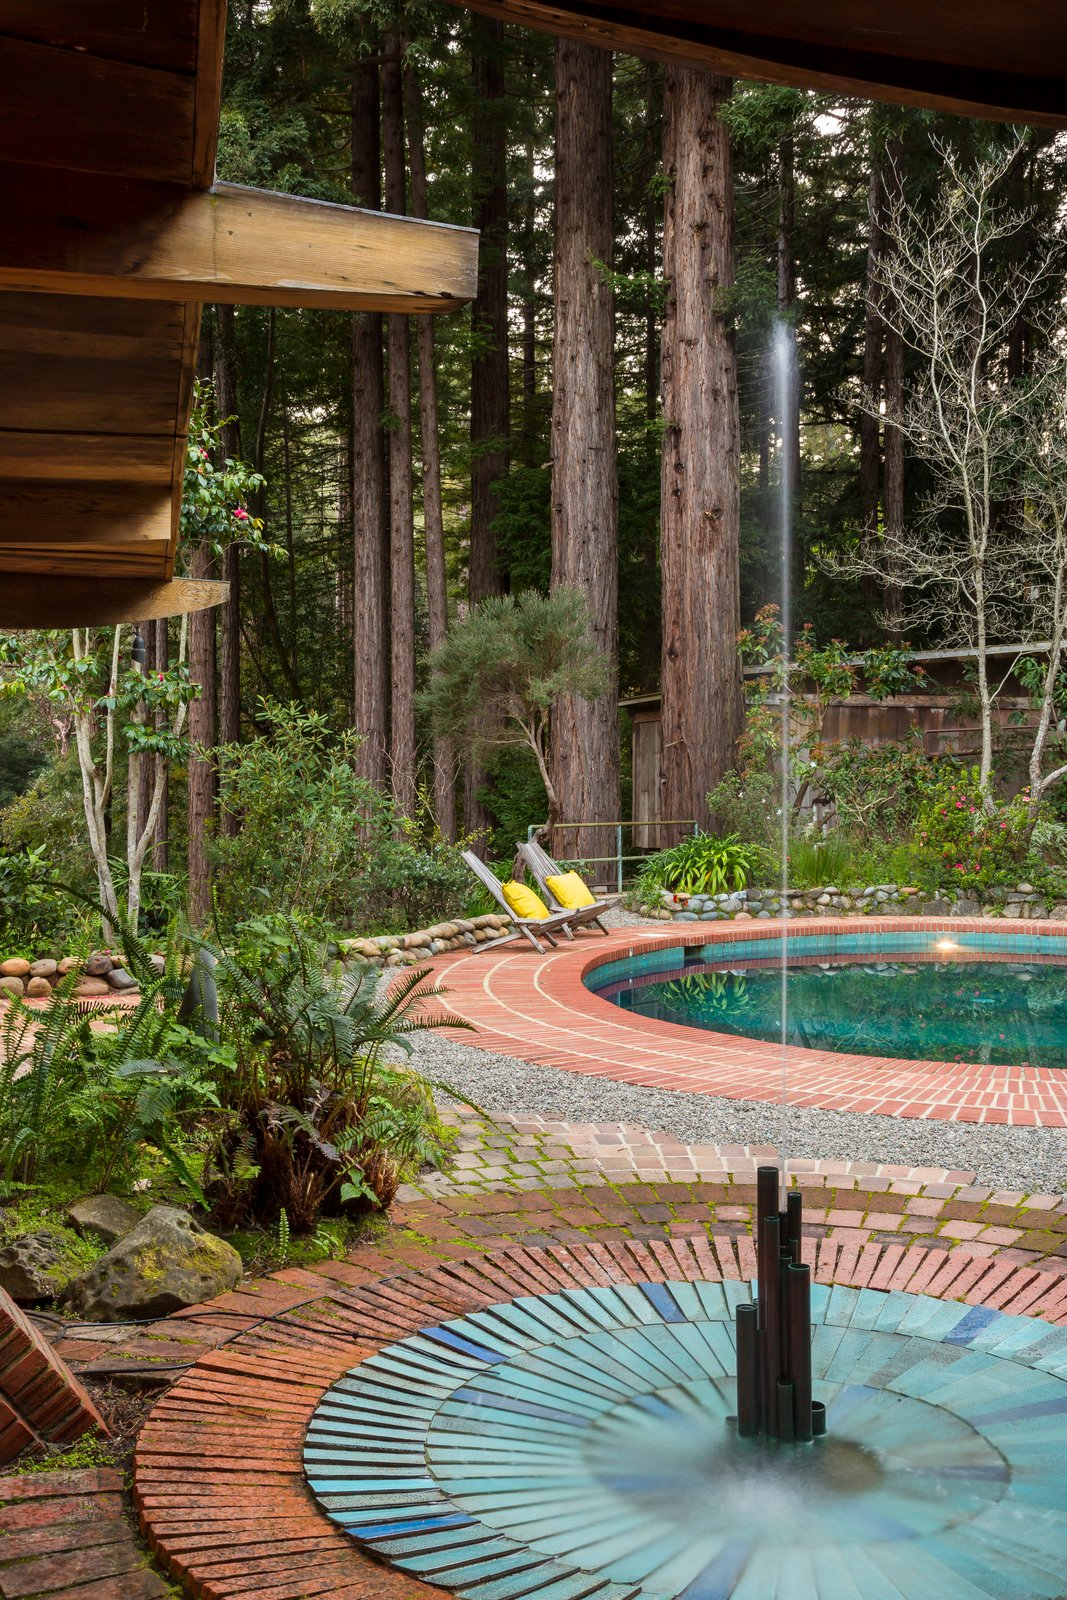 Both the pool and fountain feature original blue vertical tiles from Heath Ceramics, both of which are still functional. The Midcentury Home That Daniel Liebermann Built For His Parents Asks $2.8 Million - Photo 14 of 17